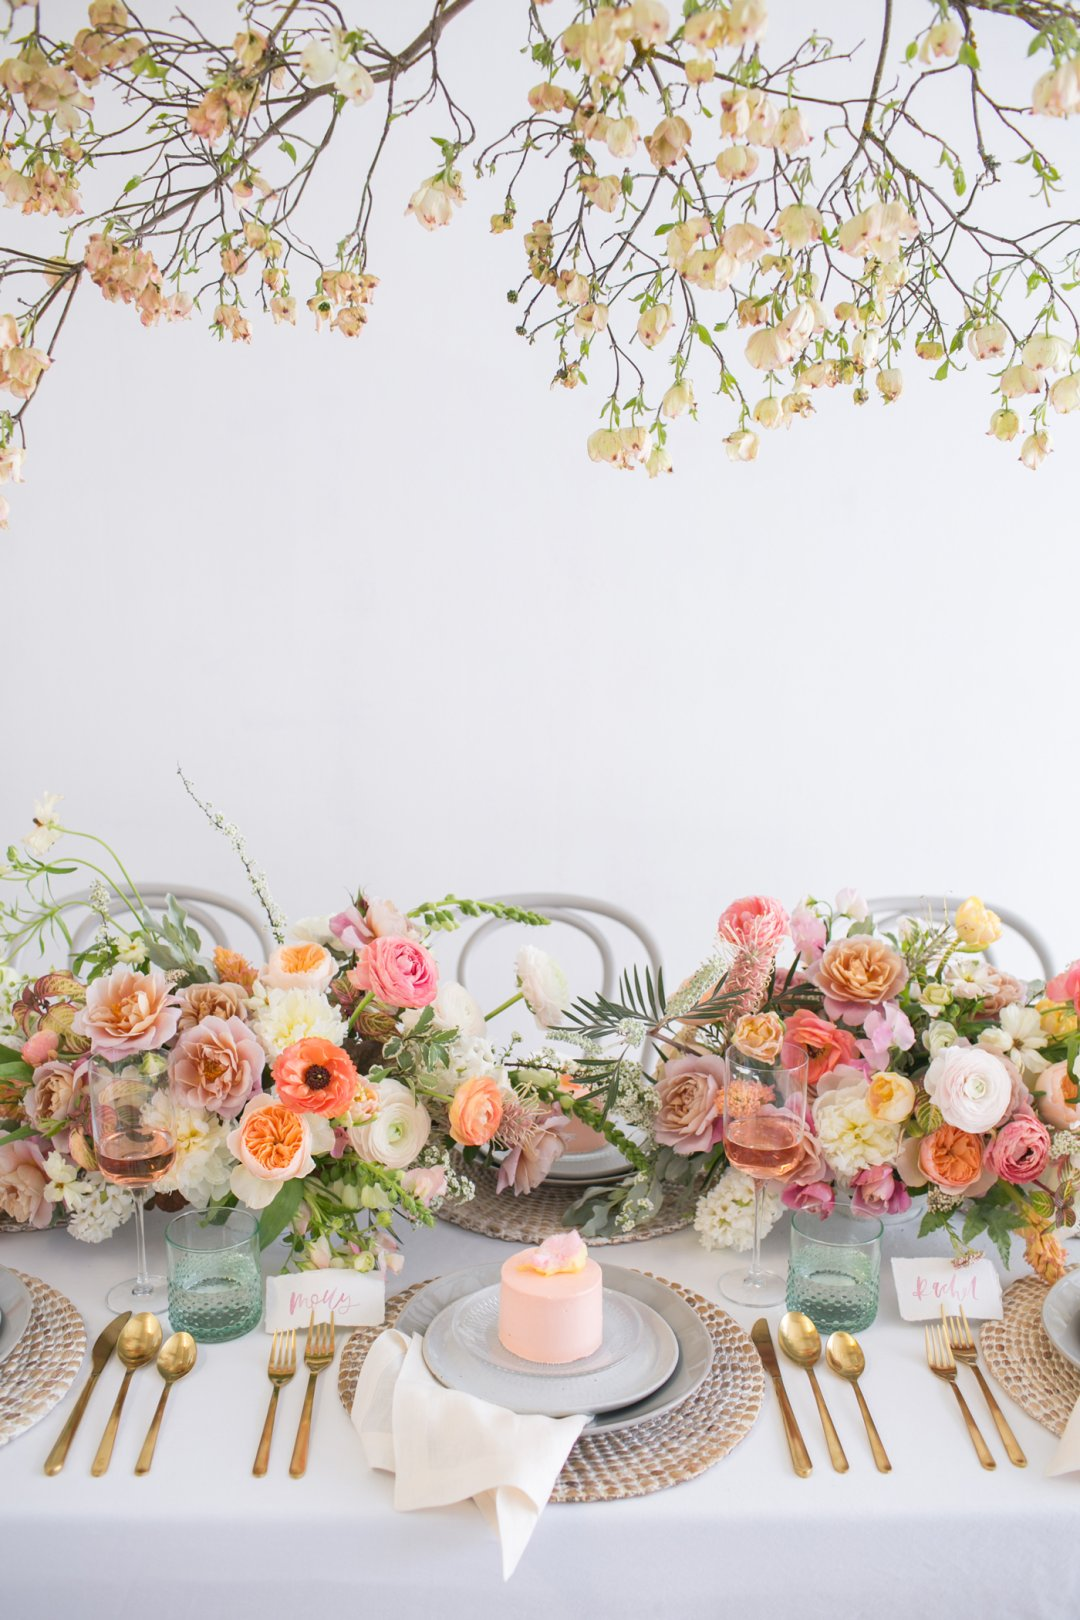 Floral tablescape for bridal shower with blush tones